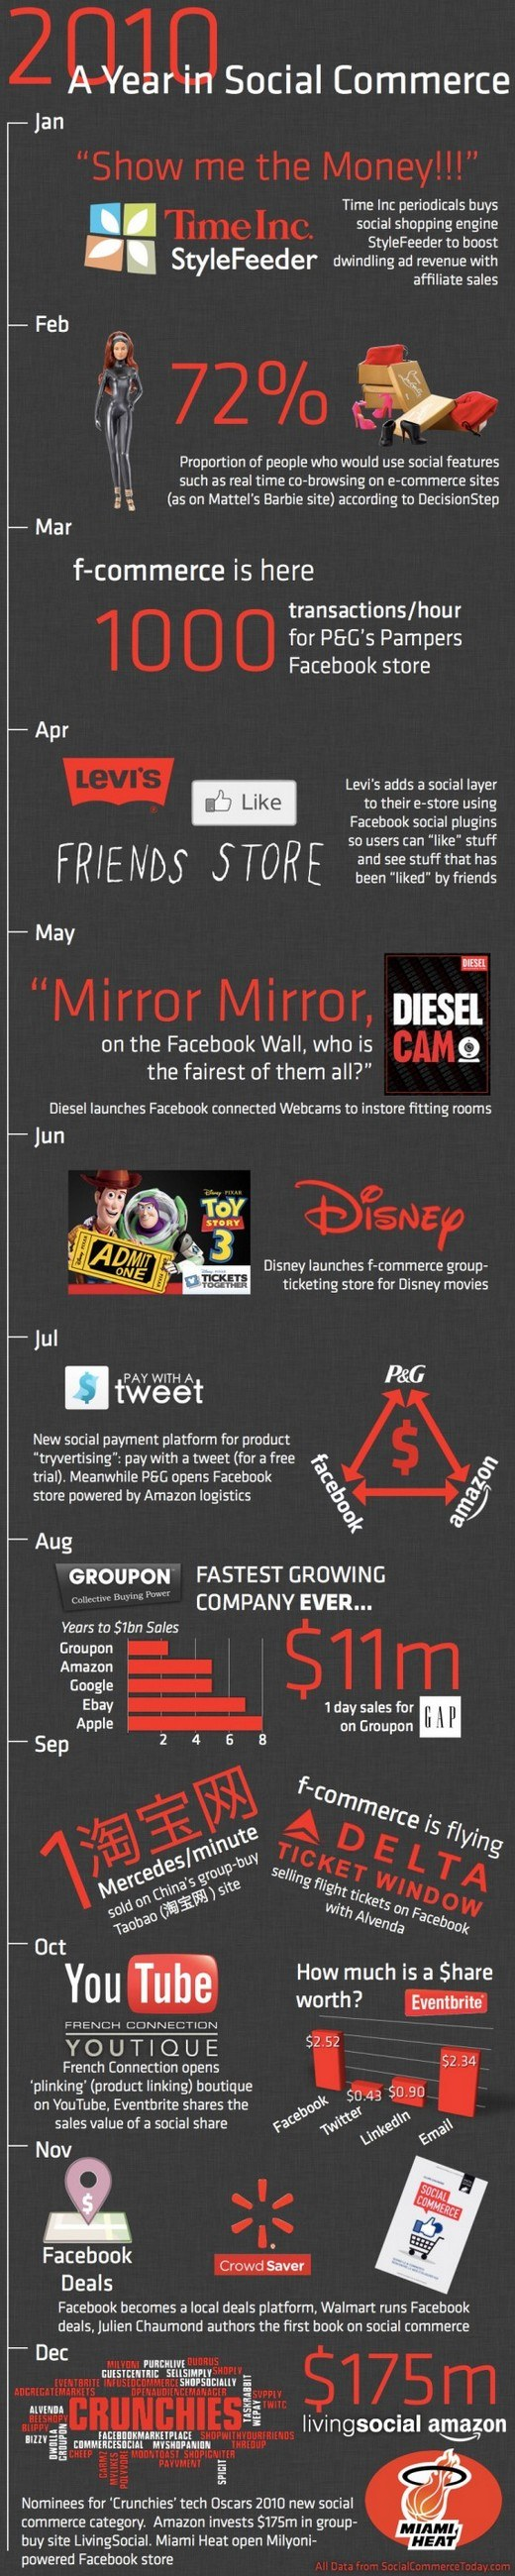 socialcommerceinfographic